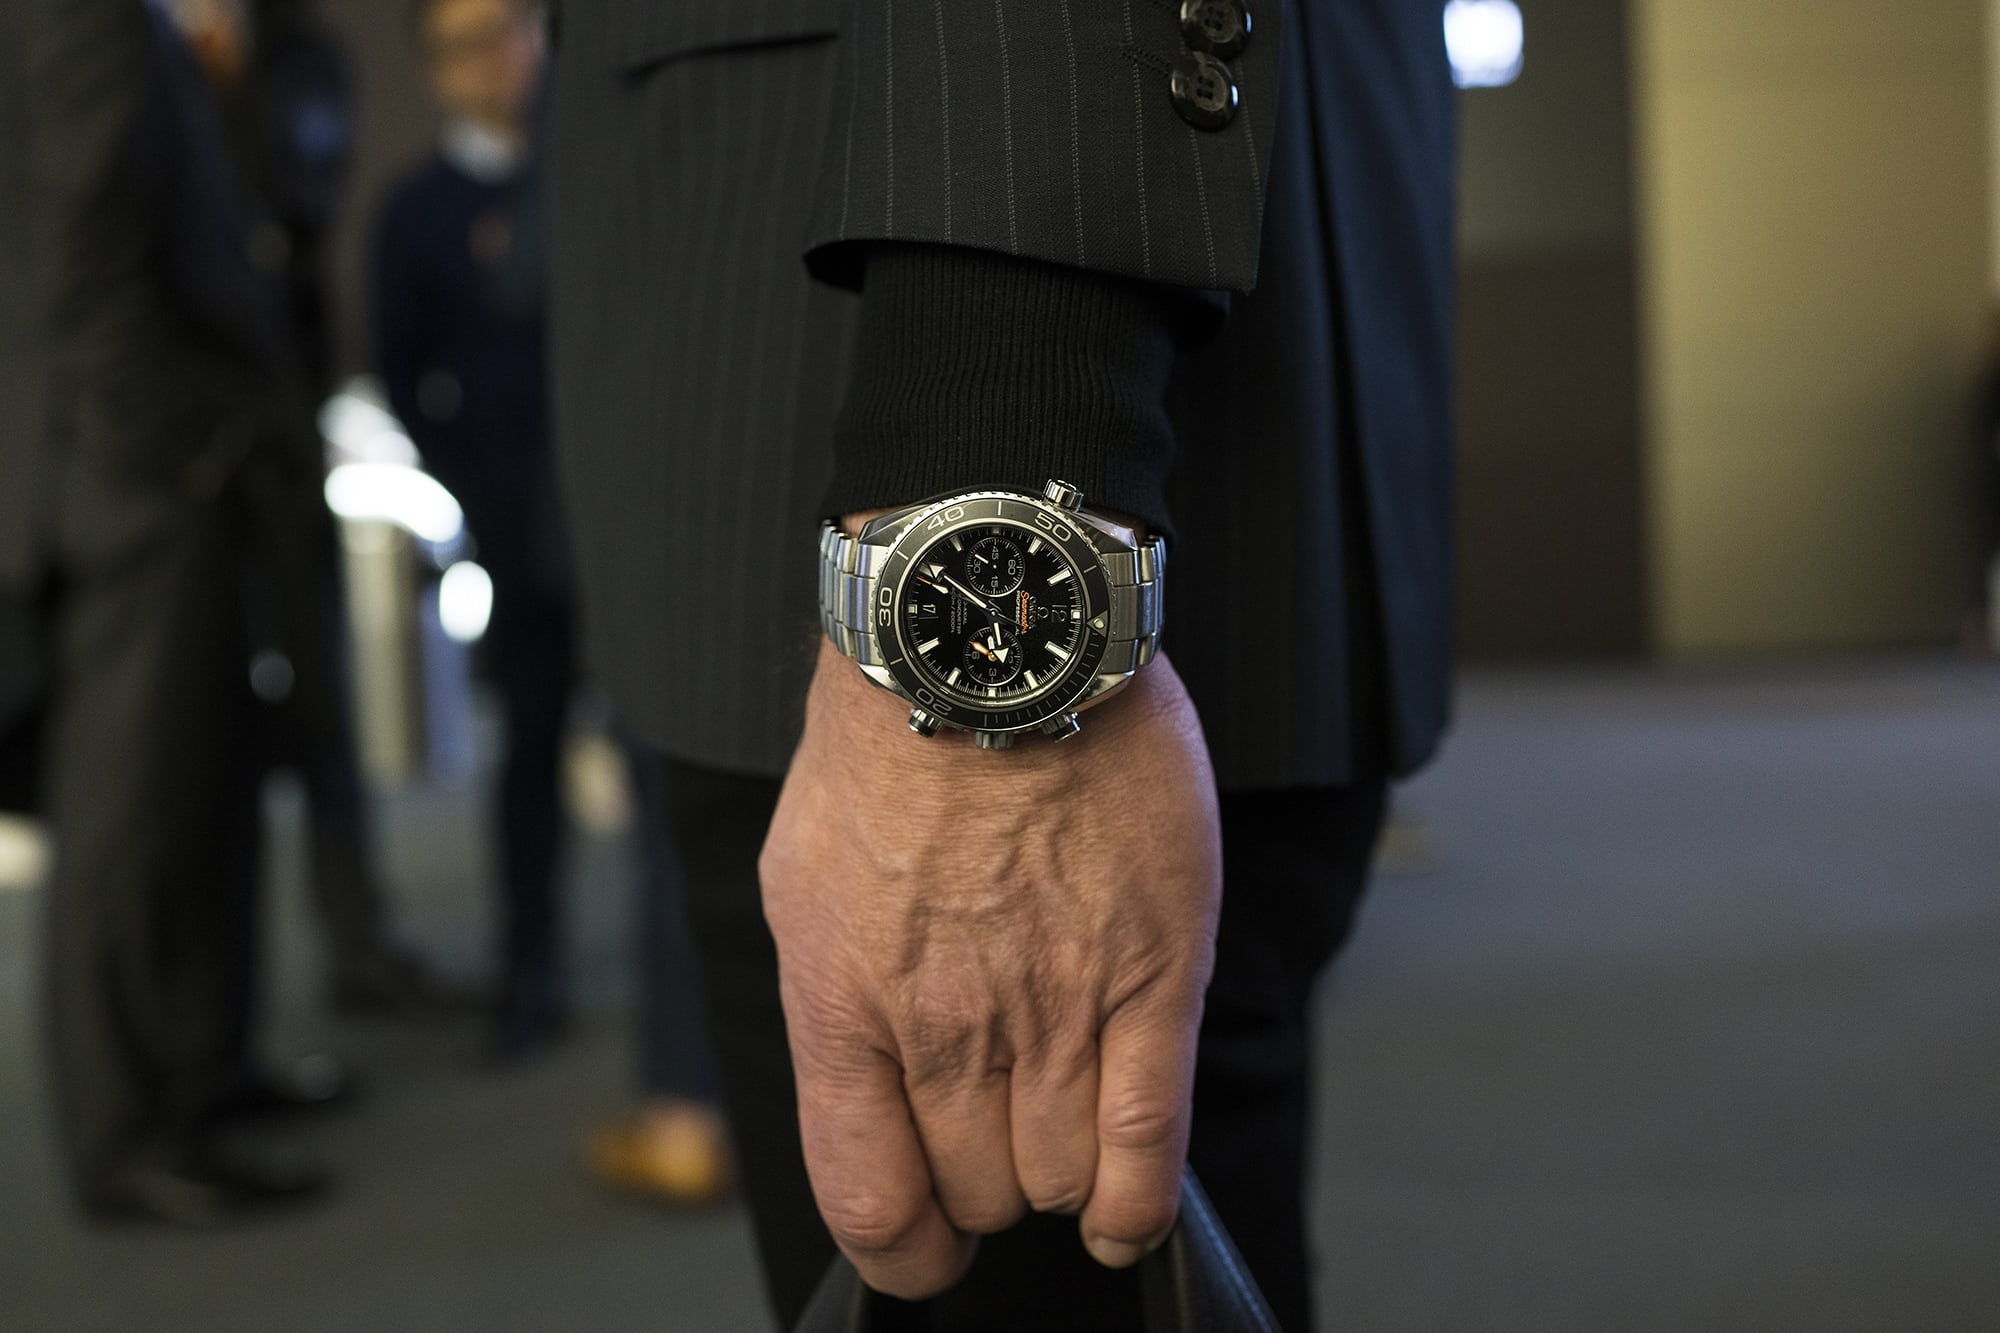 Photo Report: The Fashion And Watches Of Baselworld 2018 Photo Report: The Fashion And Watches Of Baselworld 2018 DSC03945